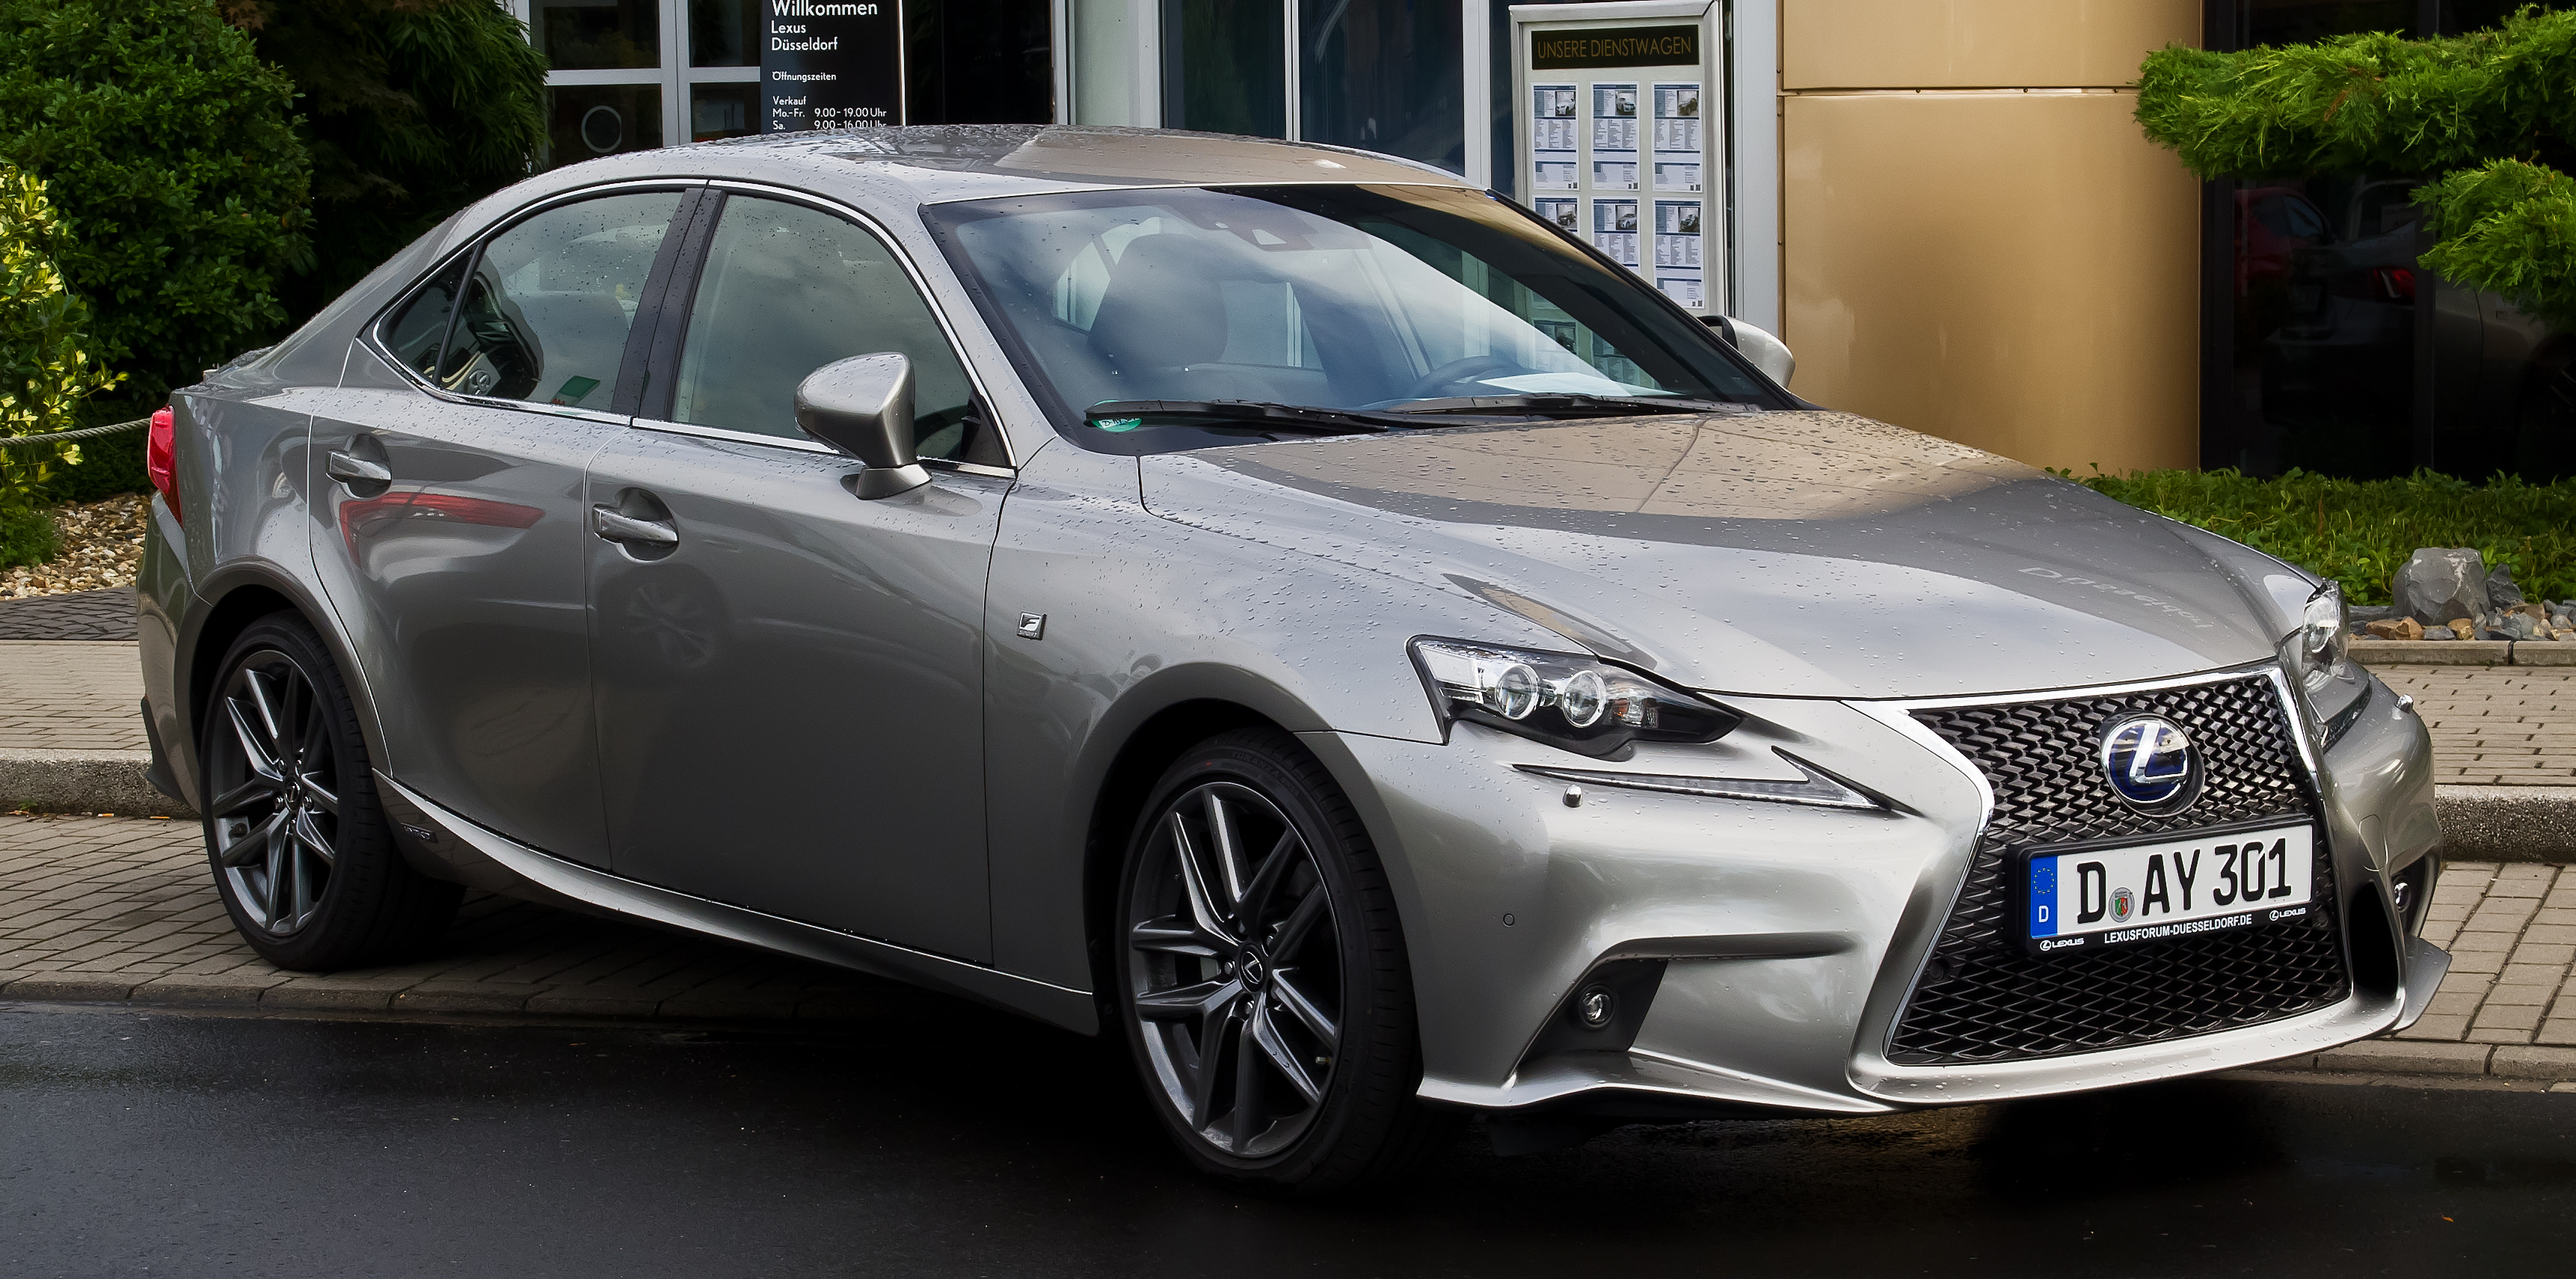 2014 2015 3is f sport bumper conversion lexus is 250 lexus is 250c club lexus is 220d is. Black Bedroom Furniture Sets. Home Design Ideas